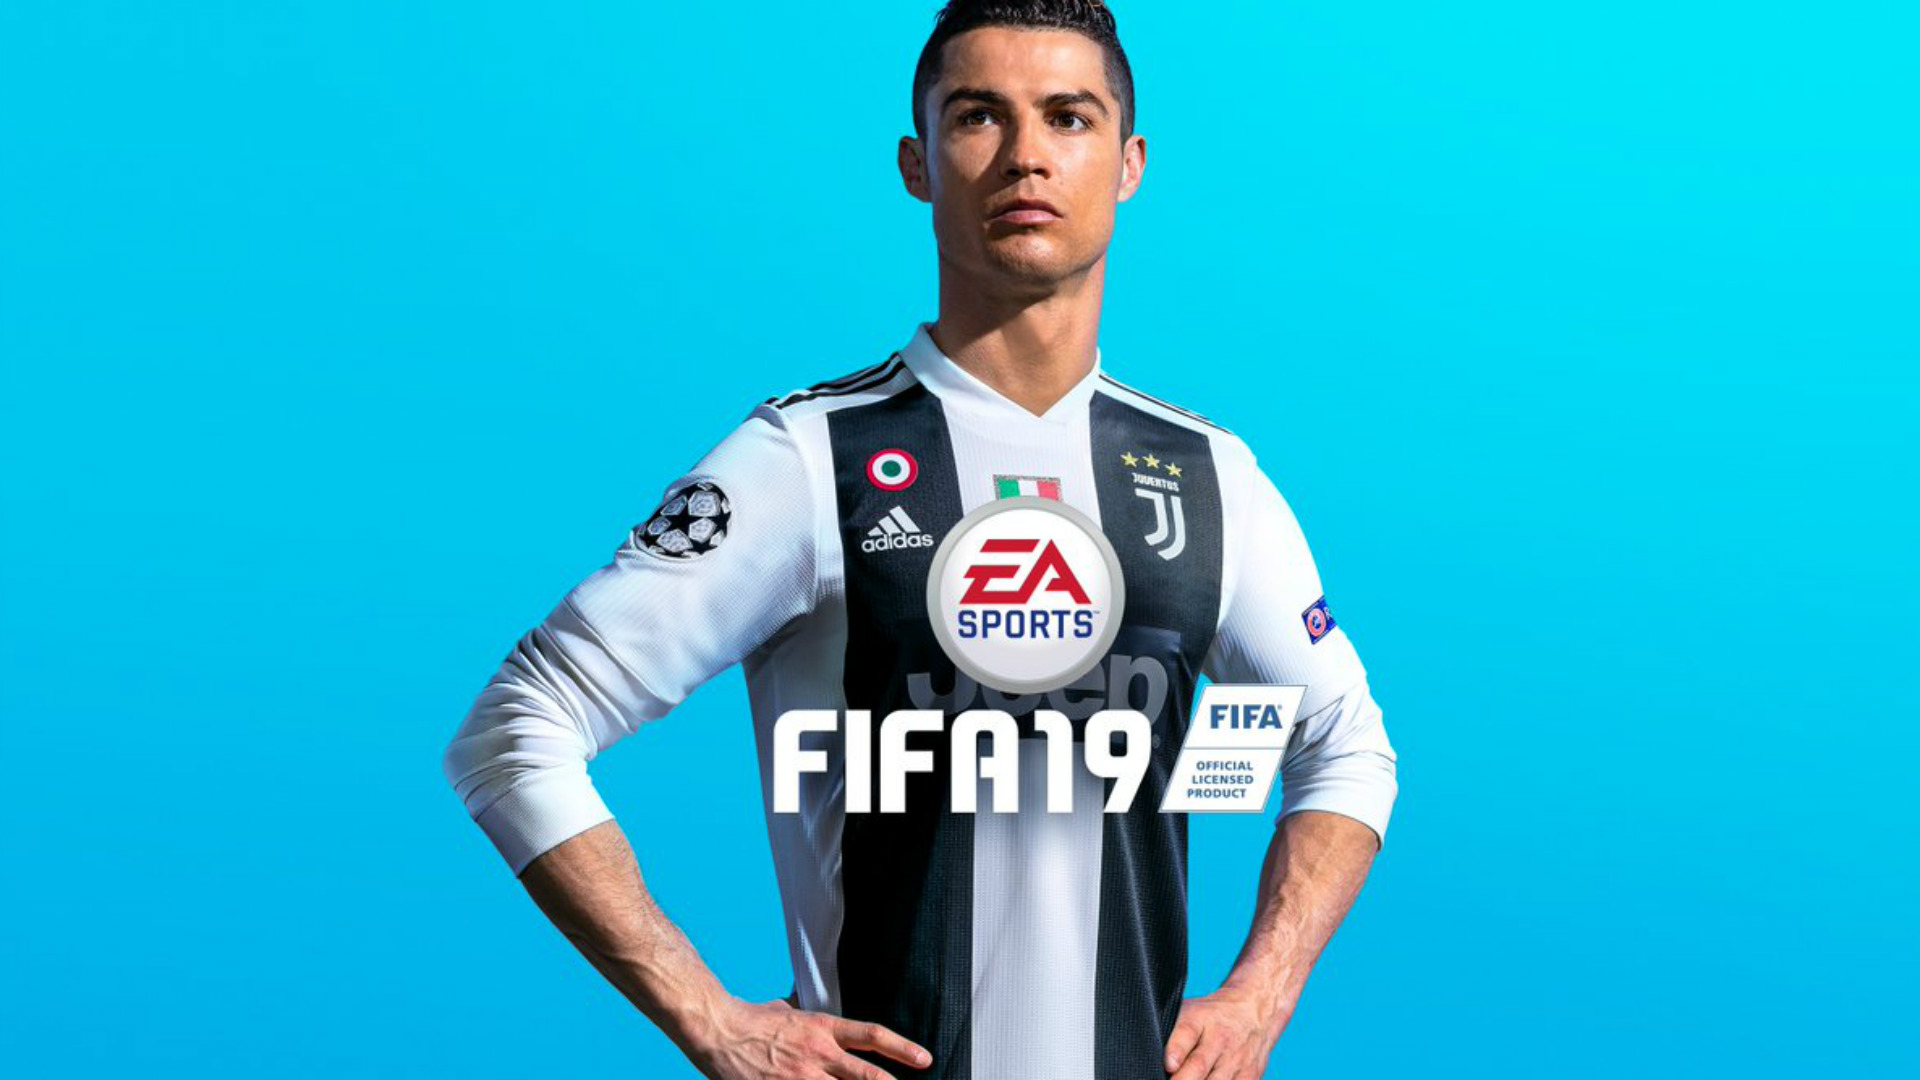 FIFA 19 demo: How to download, teams to play with & full details on